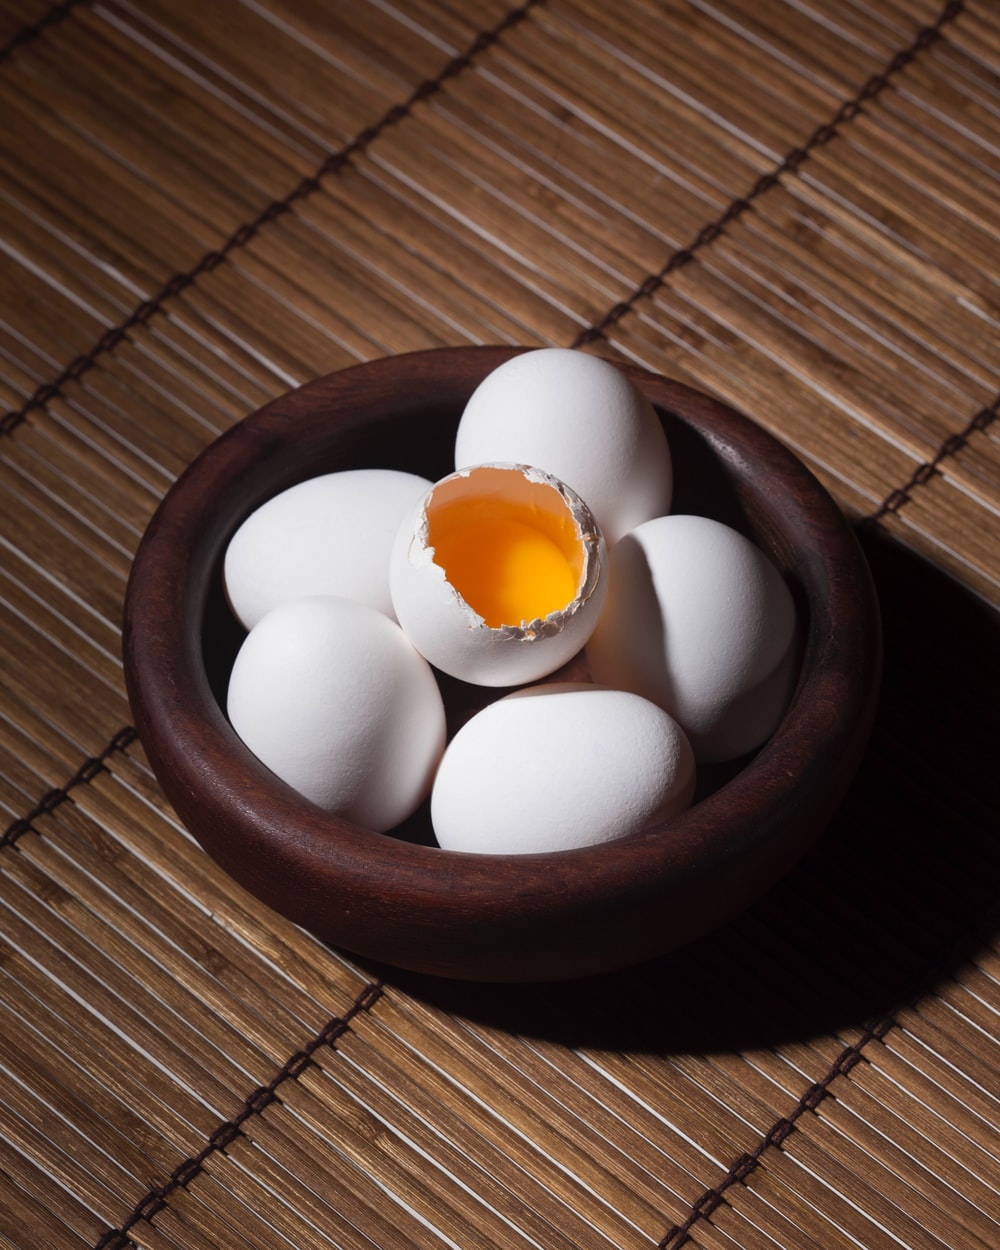 One egg cracks to show the yolk in a bowl full of eggs